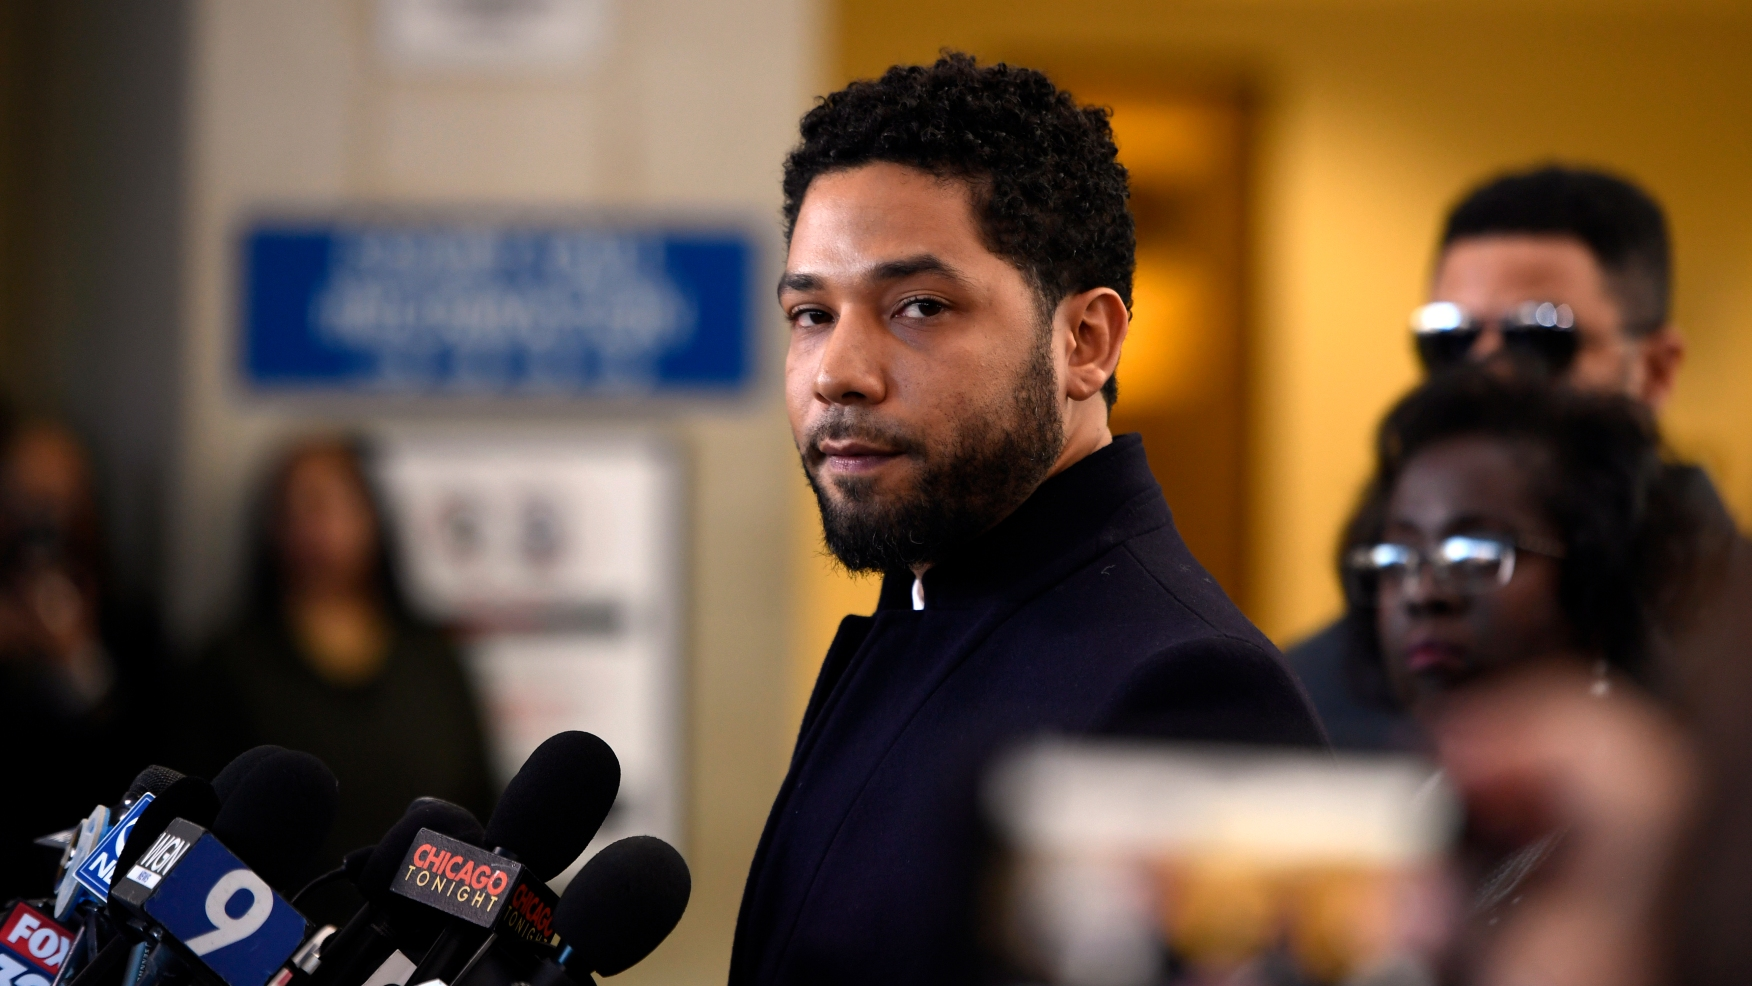 Read: City of Chicago sends letter to Jussie Smollett ...